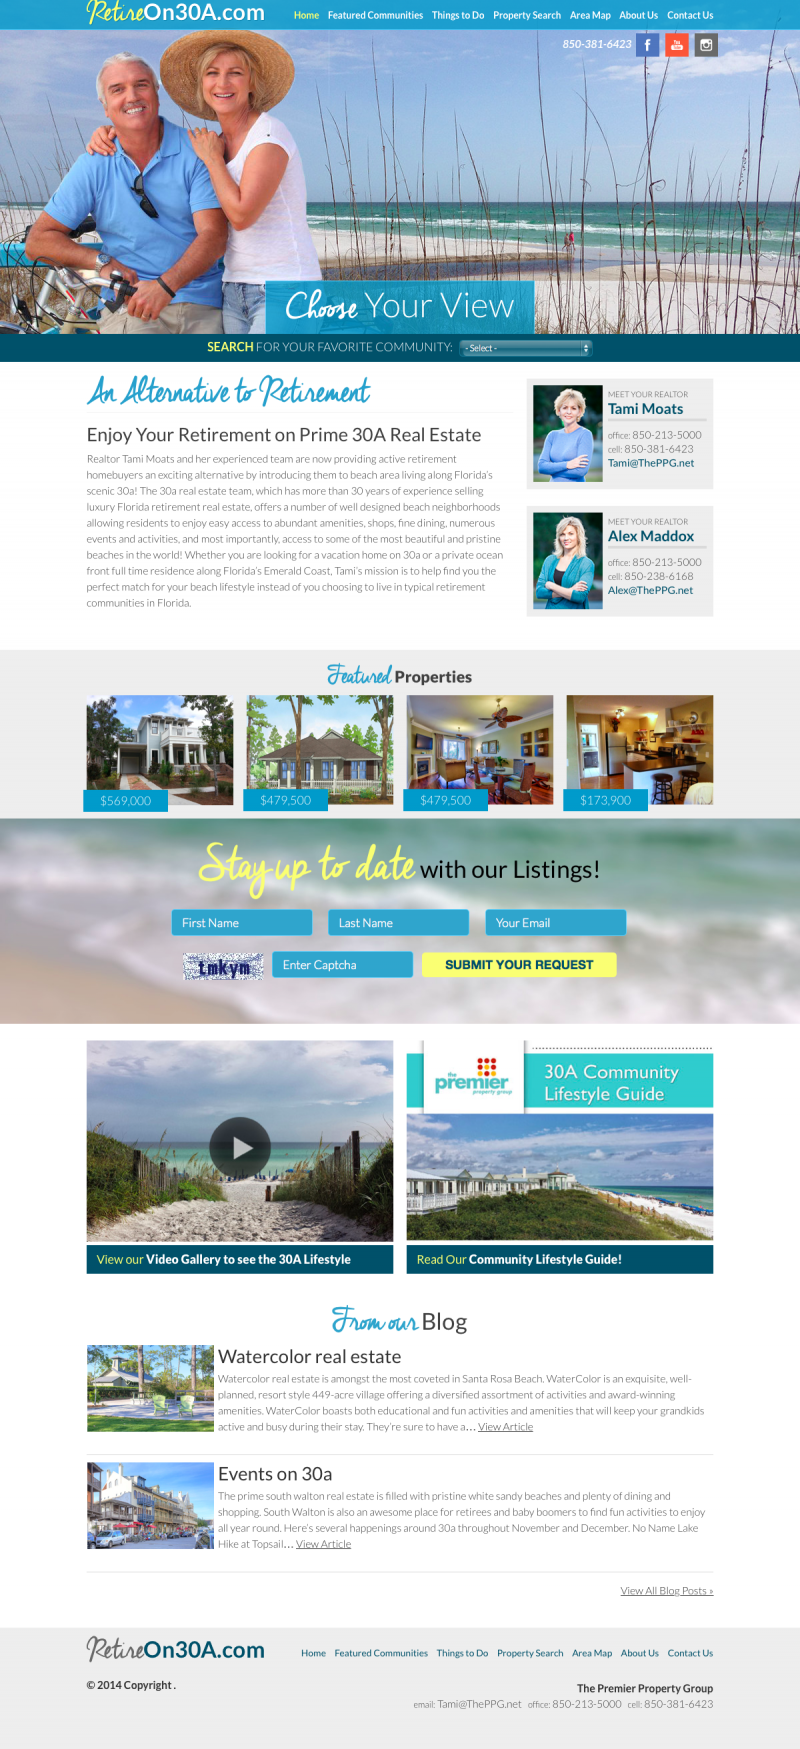 Retire on 30A